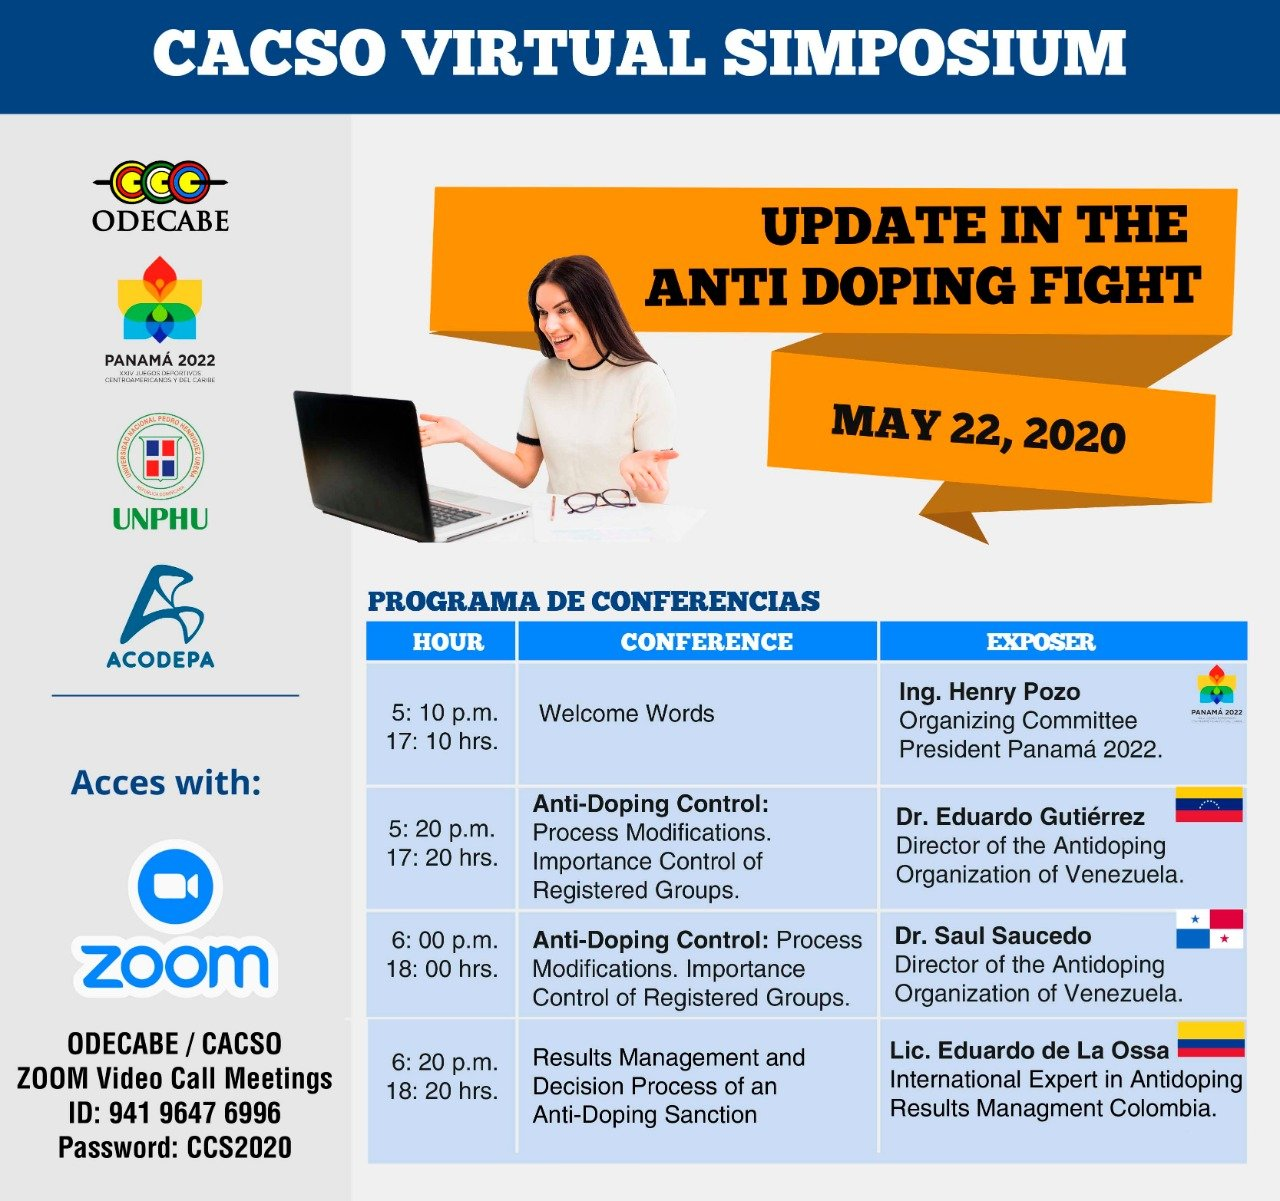 CACSO VirtualSimposium2020